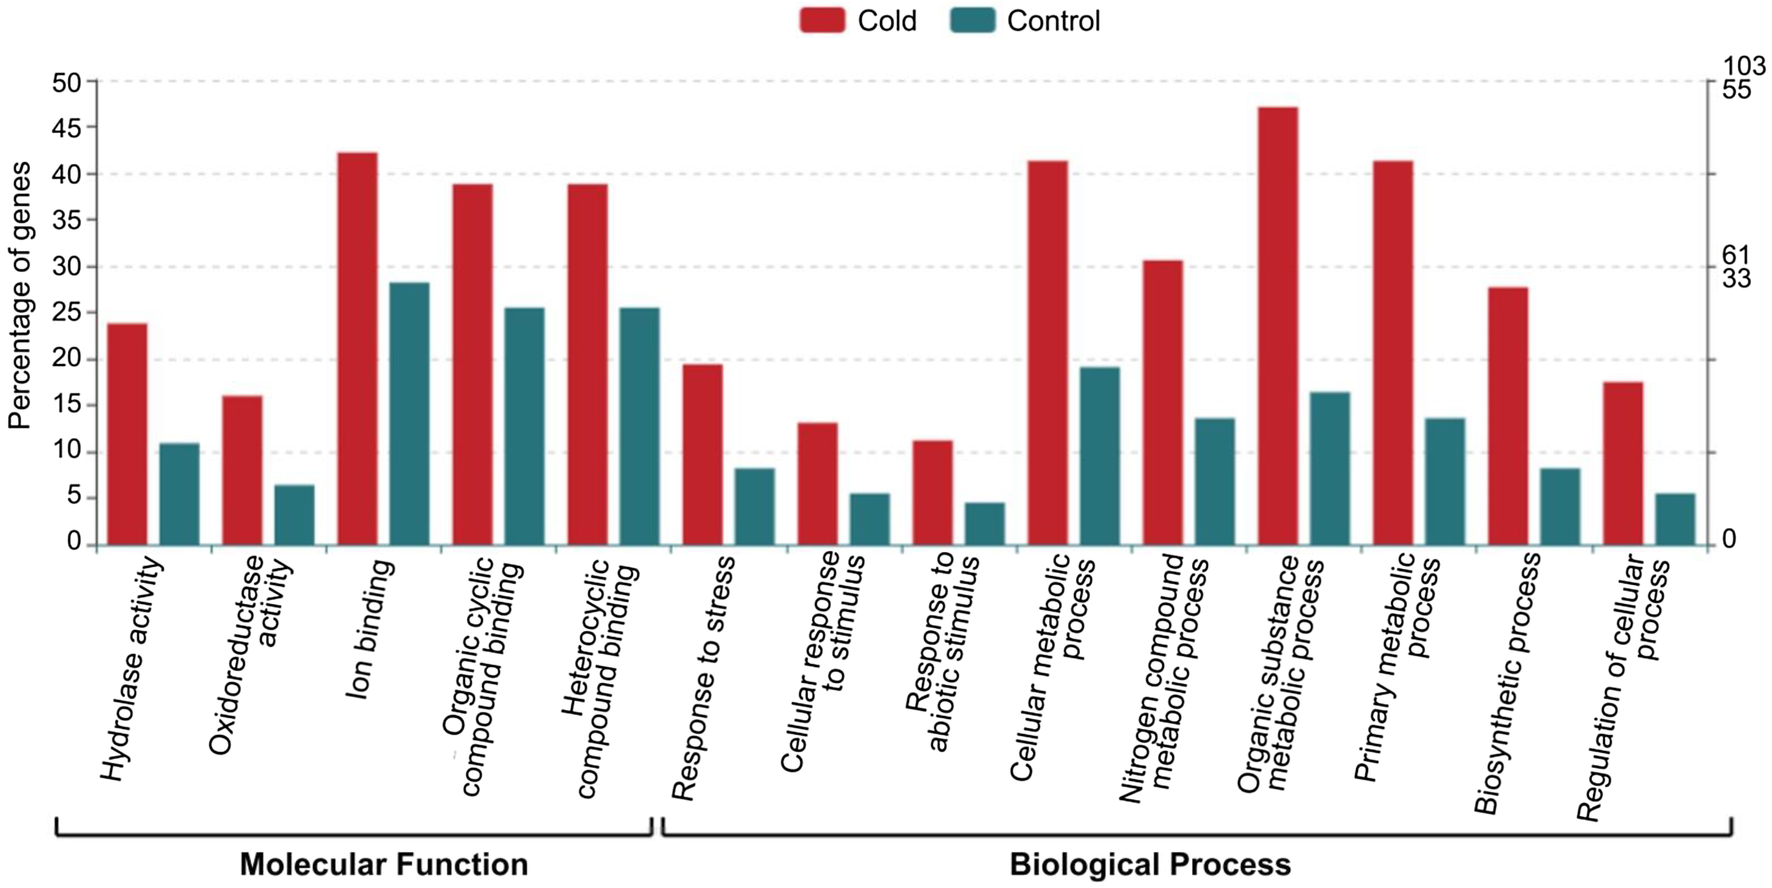 Transcriptomic response of durum wheat to cold stress at